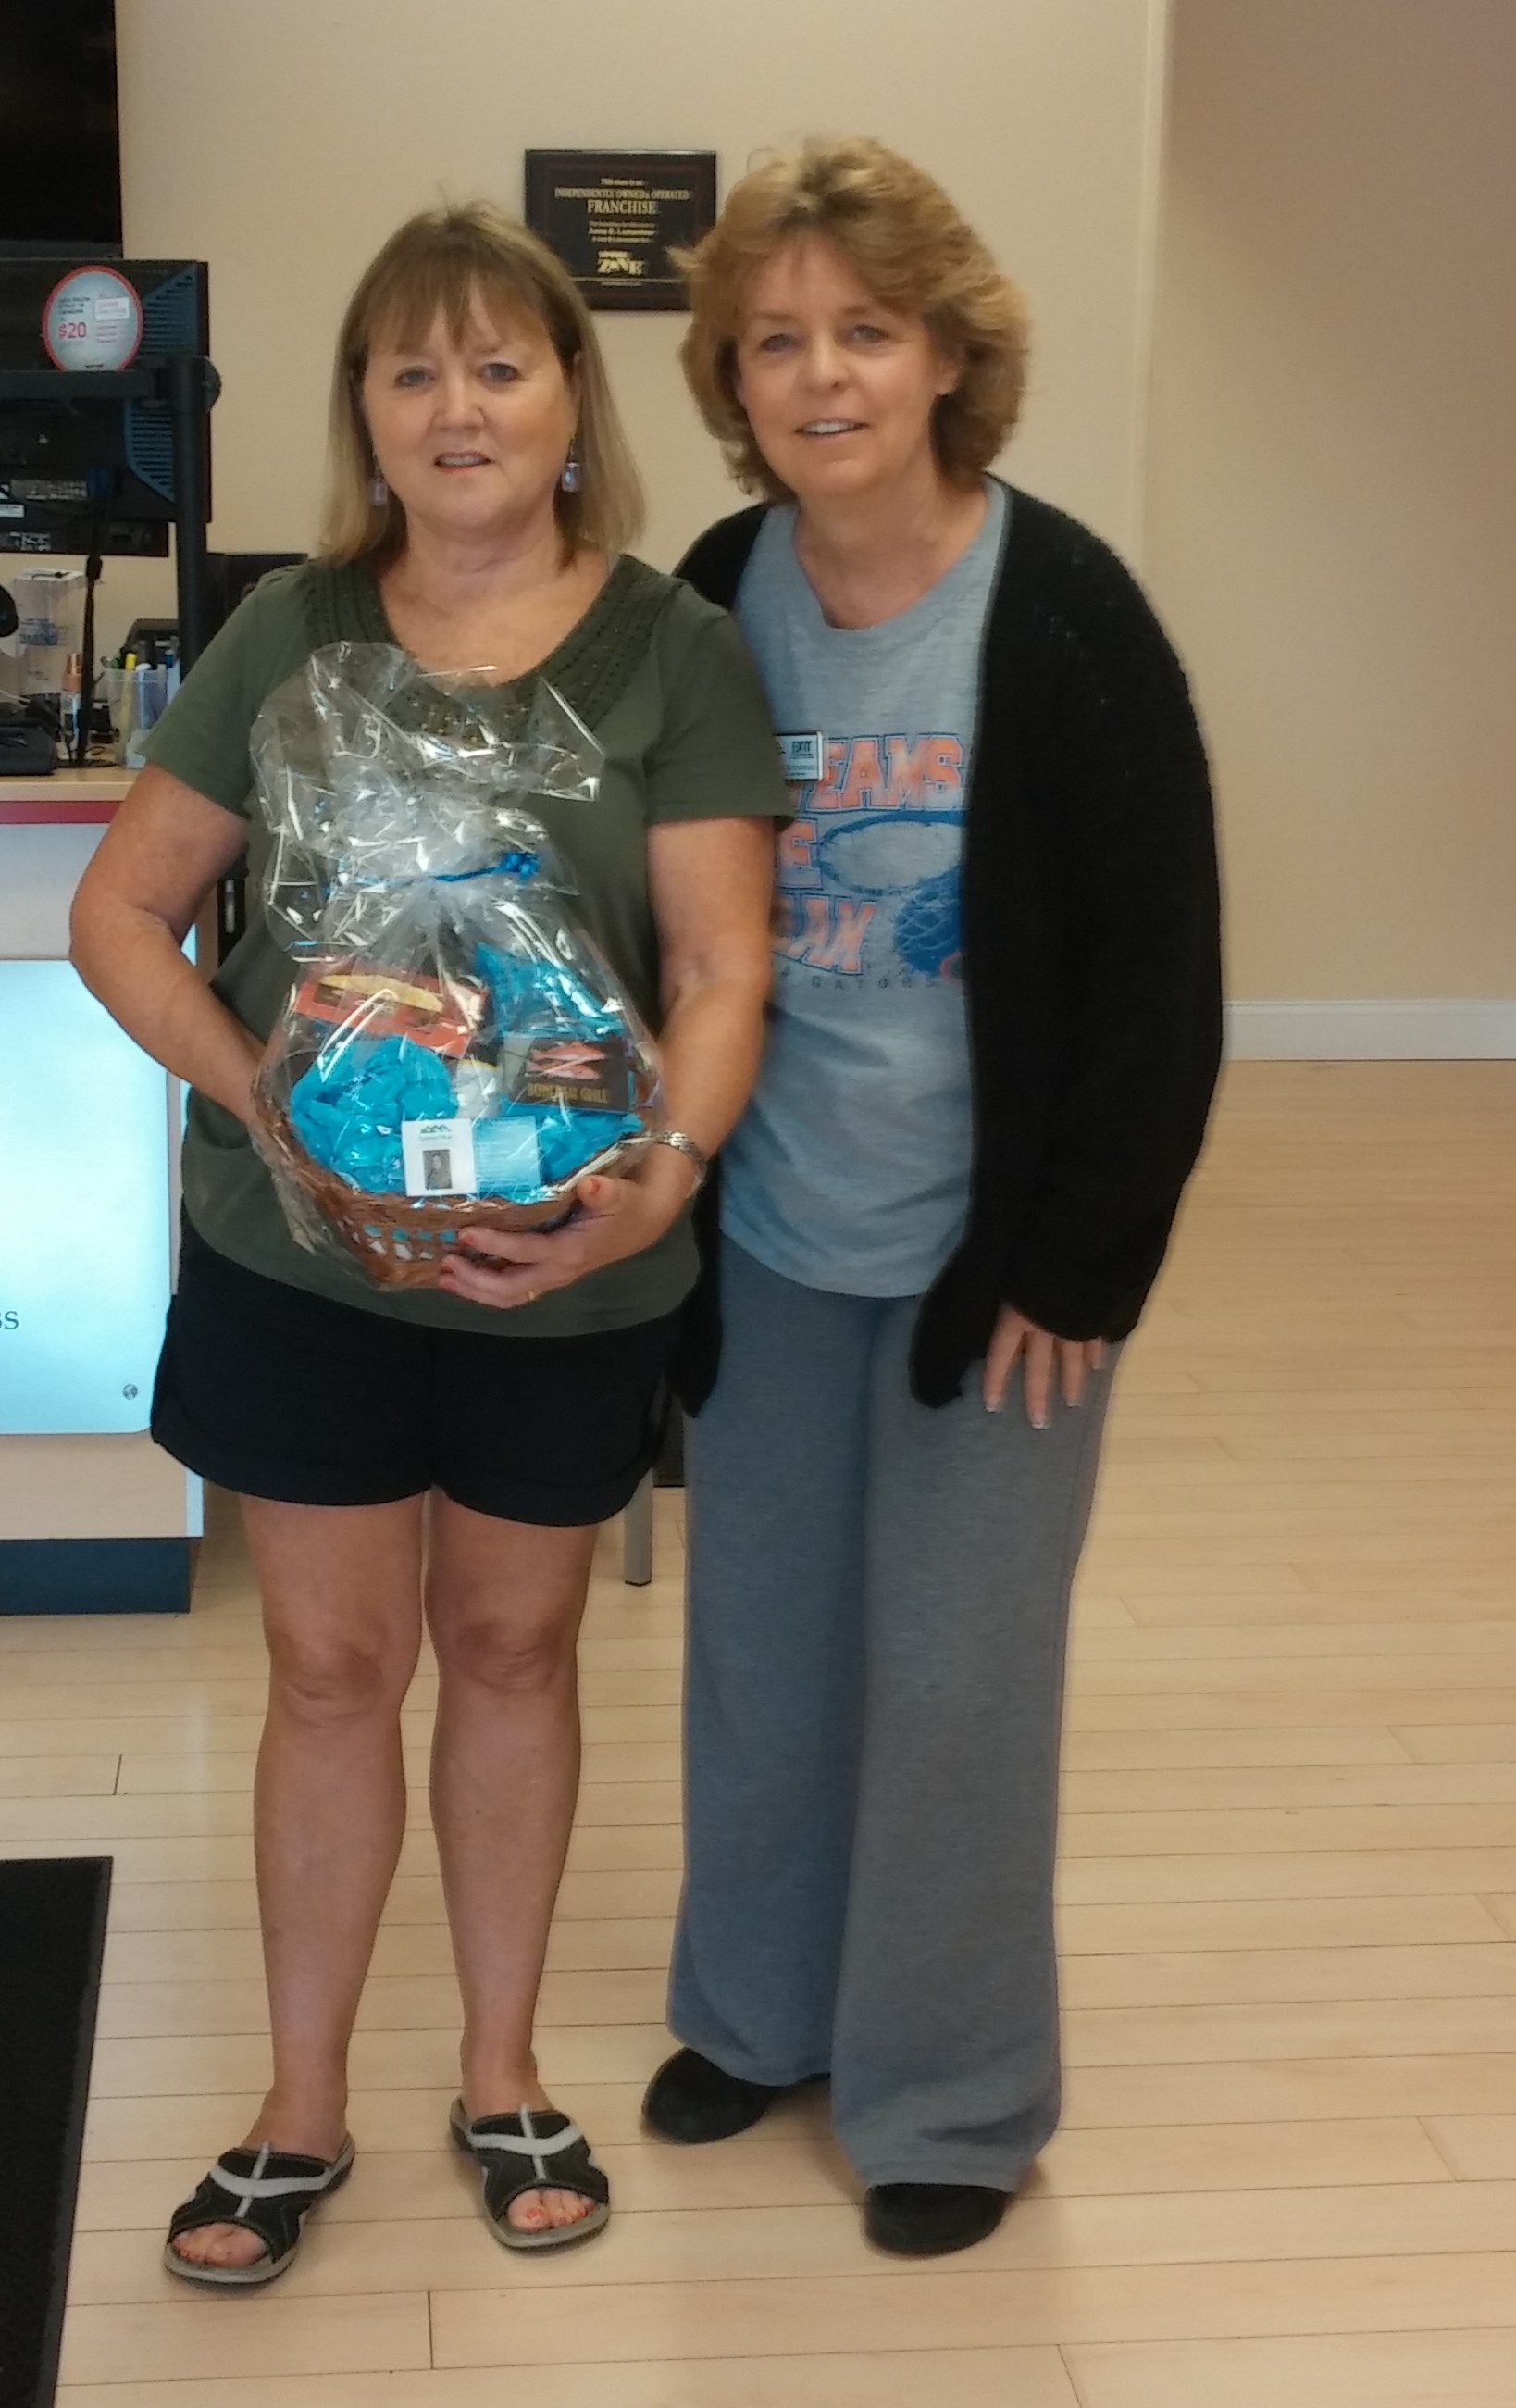 Winner of the Date Night Basket from the Taste of Medford / Business Expo 2013